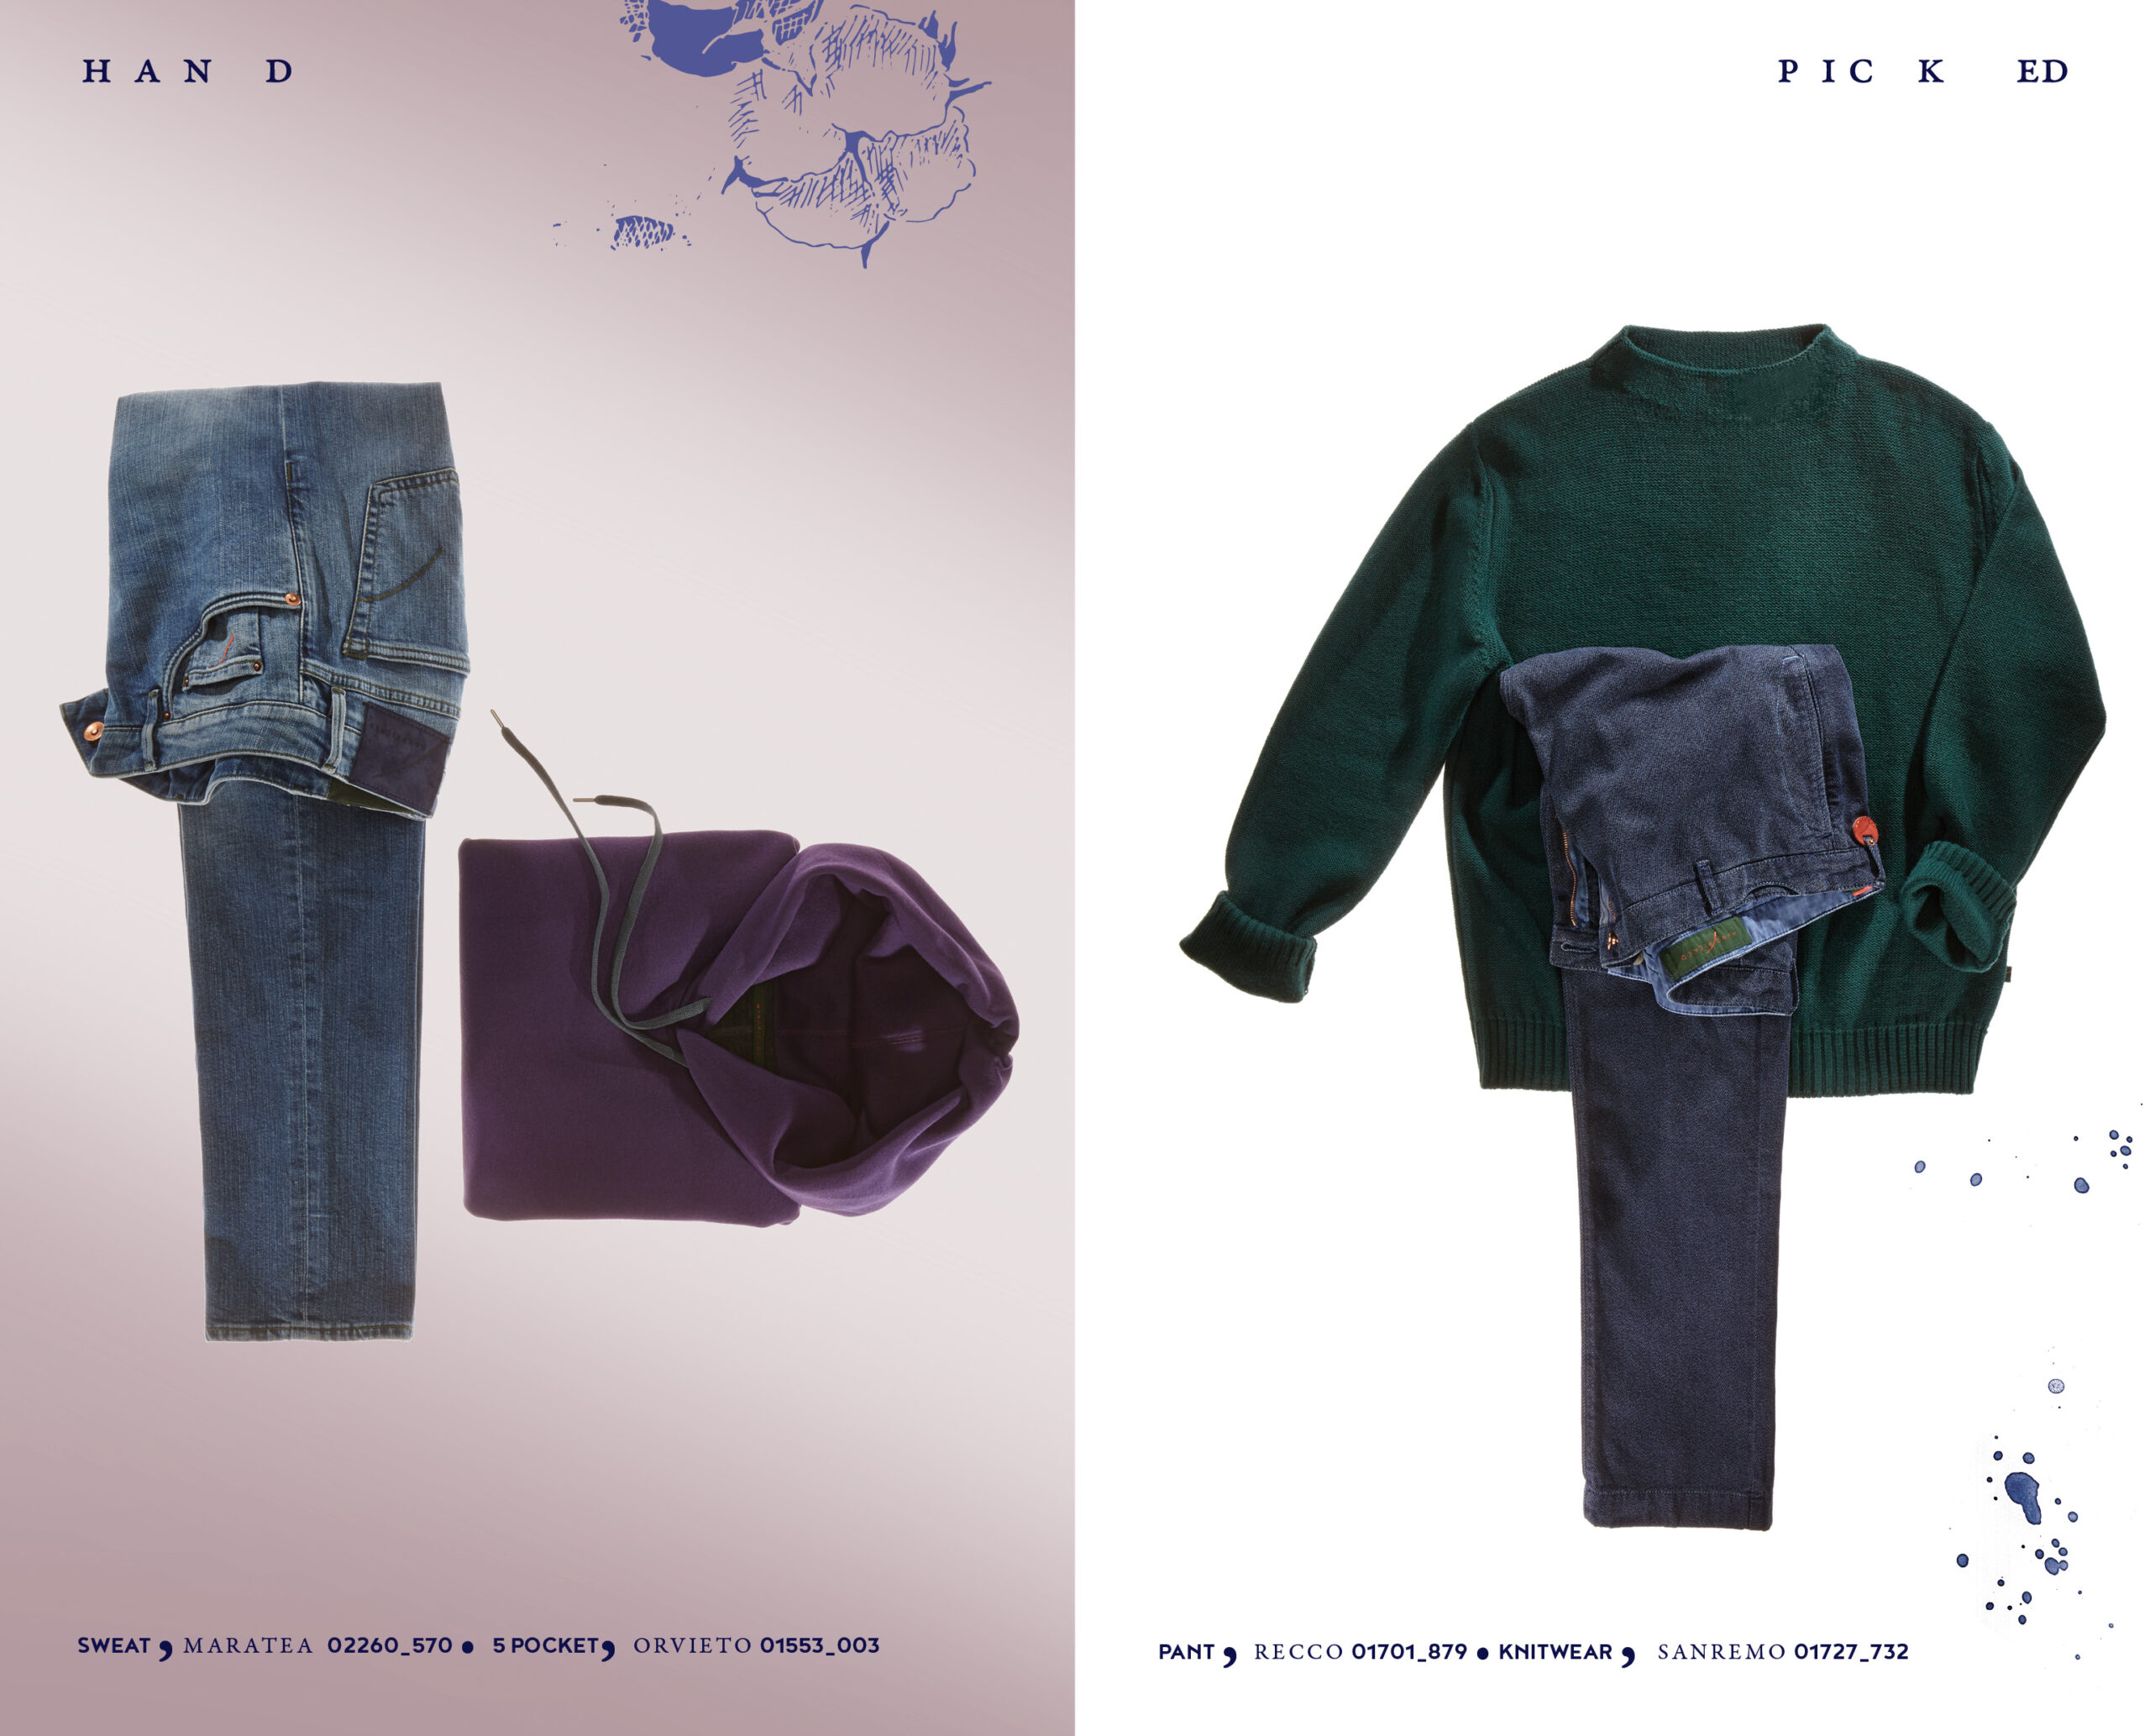 PER AGENTI_HAND PICKED_LOOK BOOK_FW20-21- 25 APRILE13